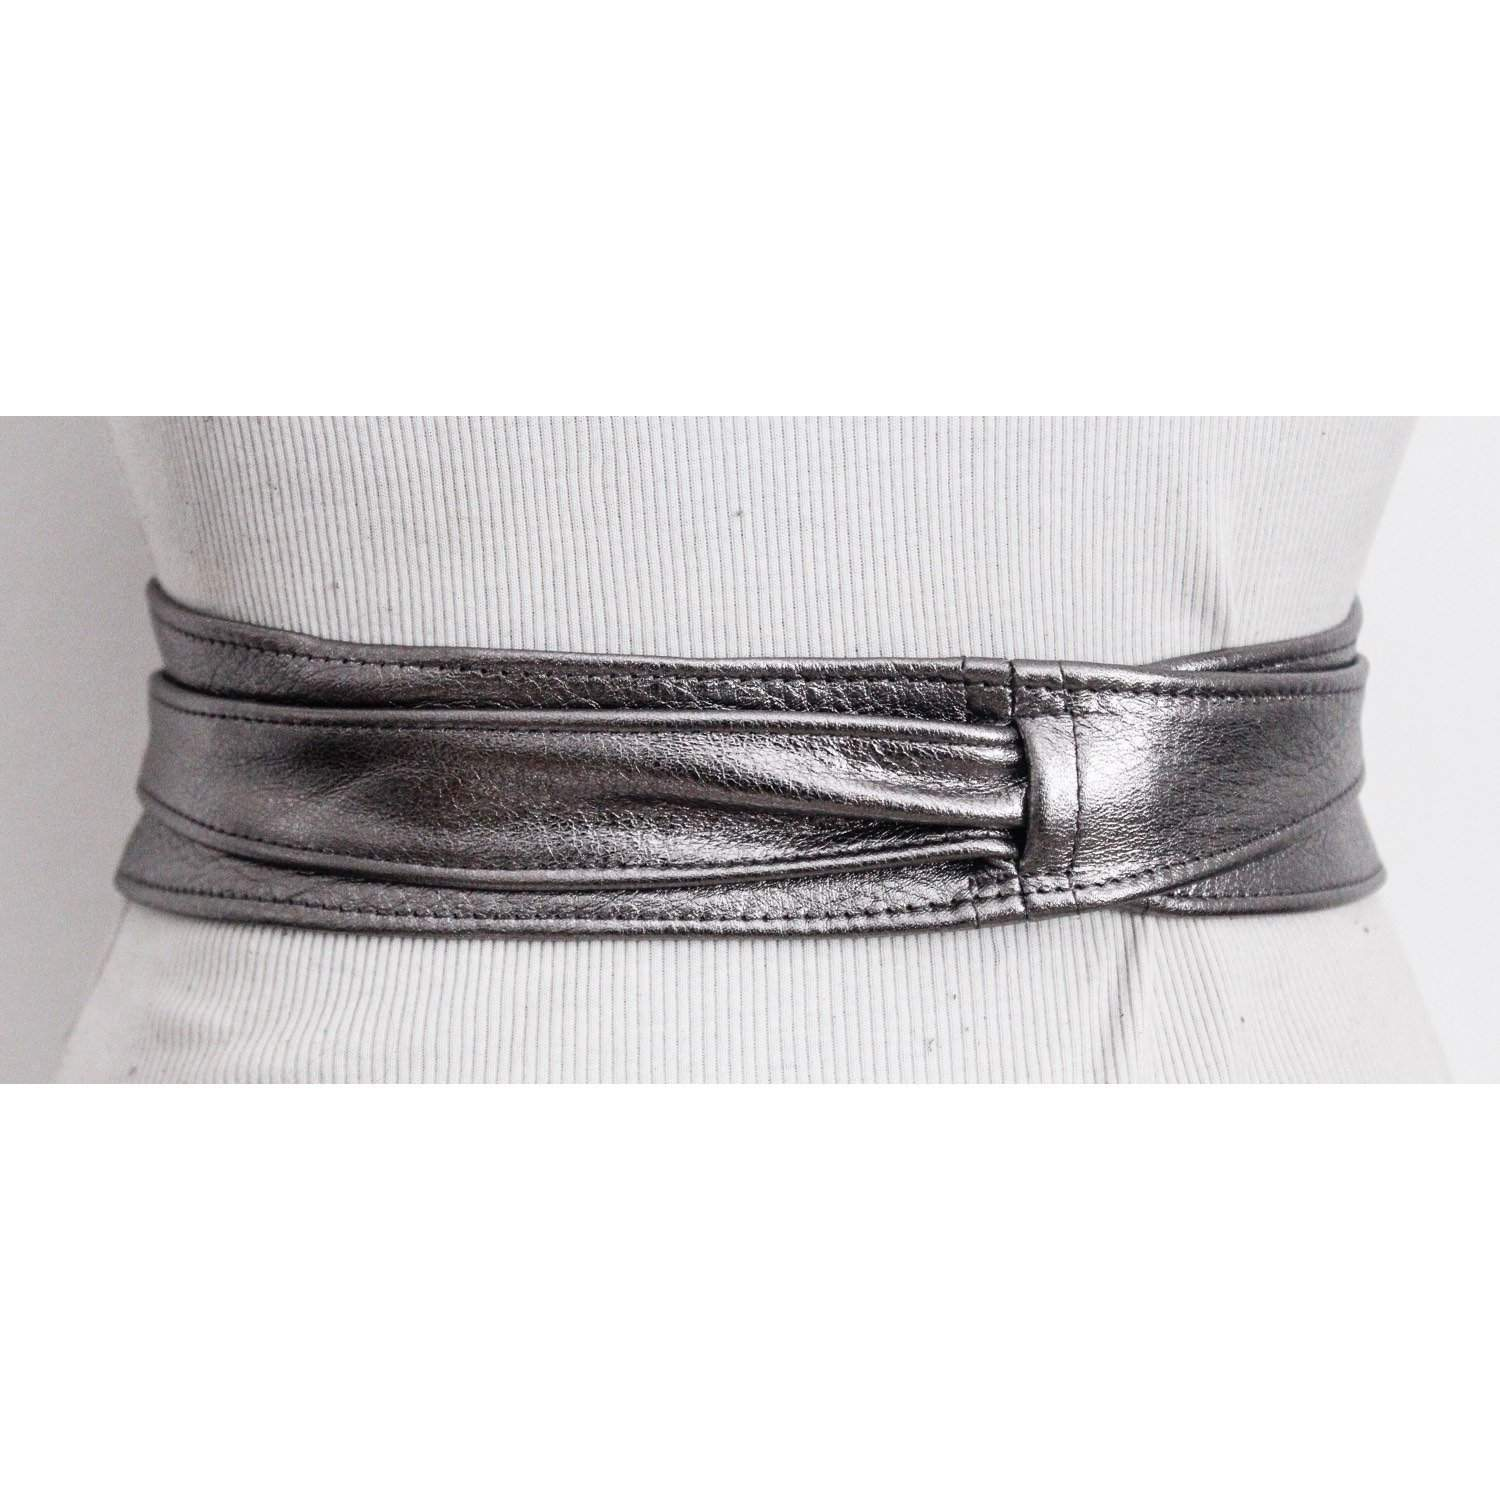 Pewter Silver Leather Obi Belt | Waist or Hip Belt | Leather tie belt | Real Leather wrap Belt | Bridesmaid belt - loveyaayaa